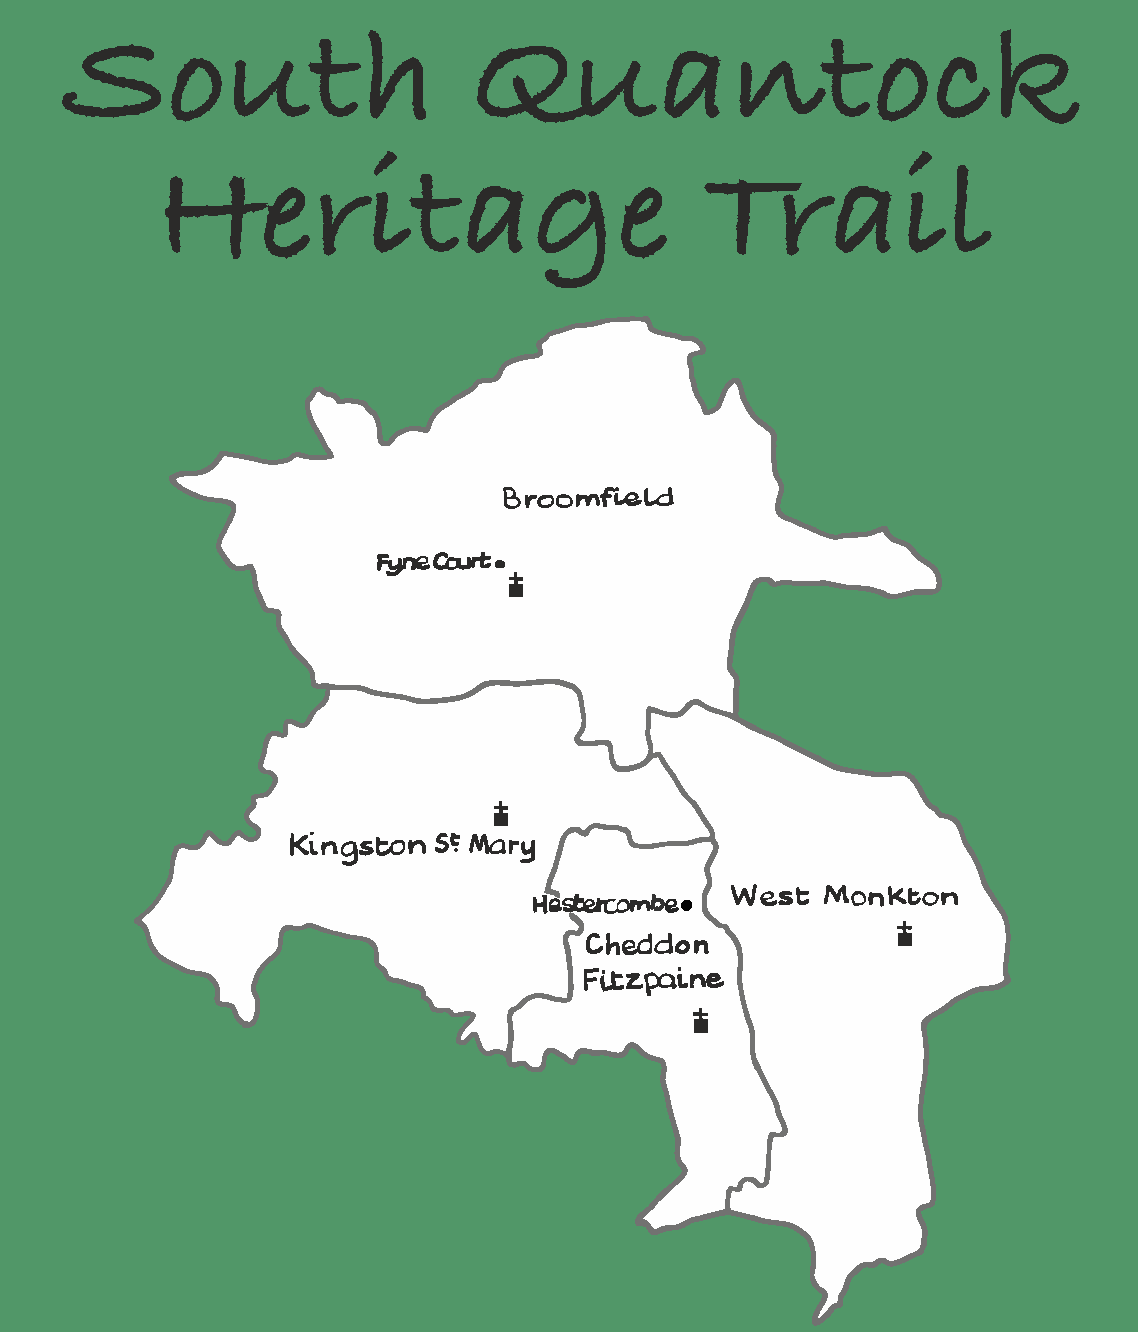 South Quantock Heritage Trail